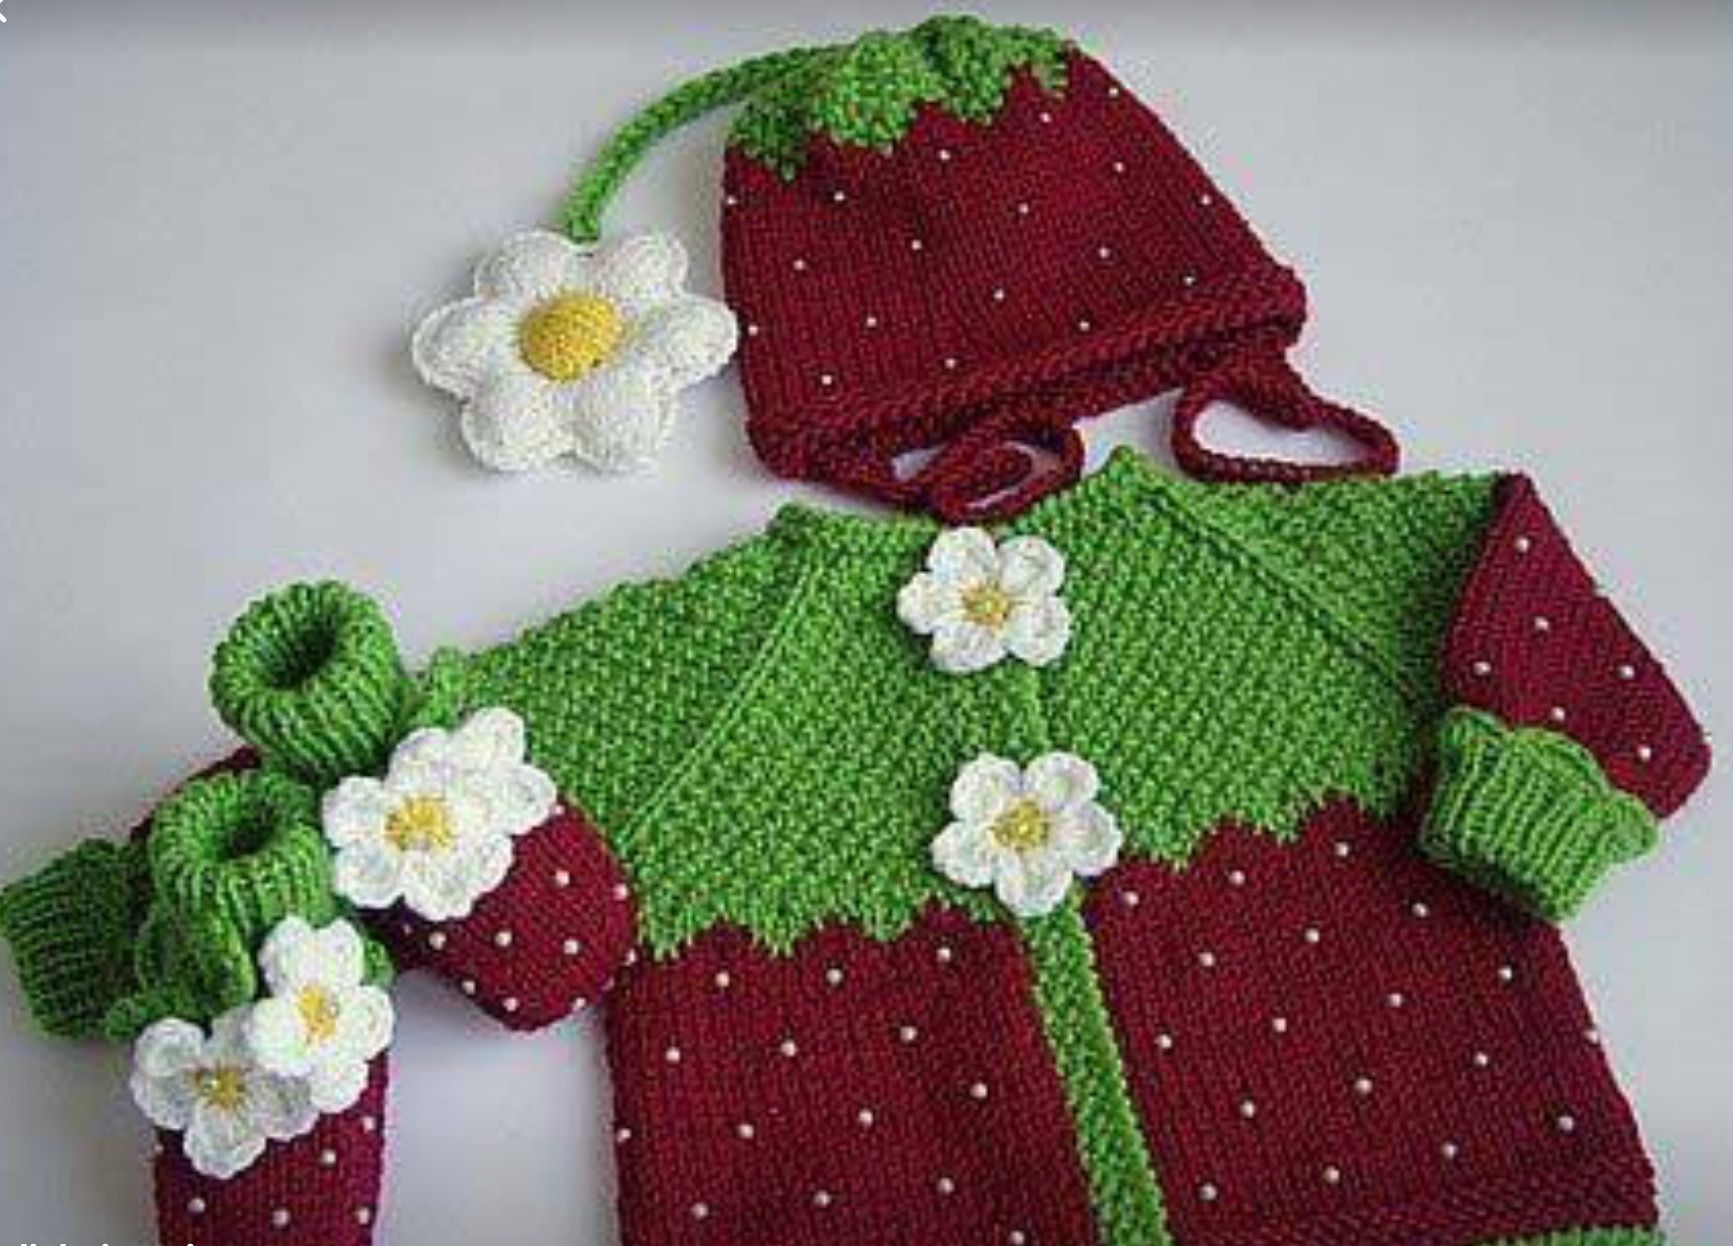 Pin By Sandhya Godbole On Baby Crochet 10 Pinterest Stricken